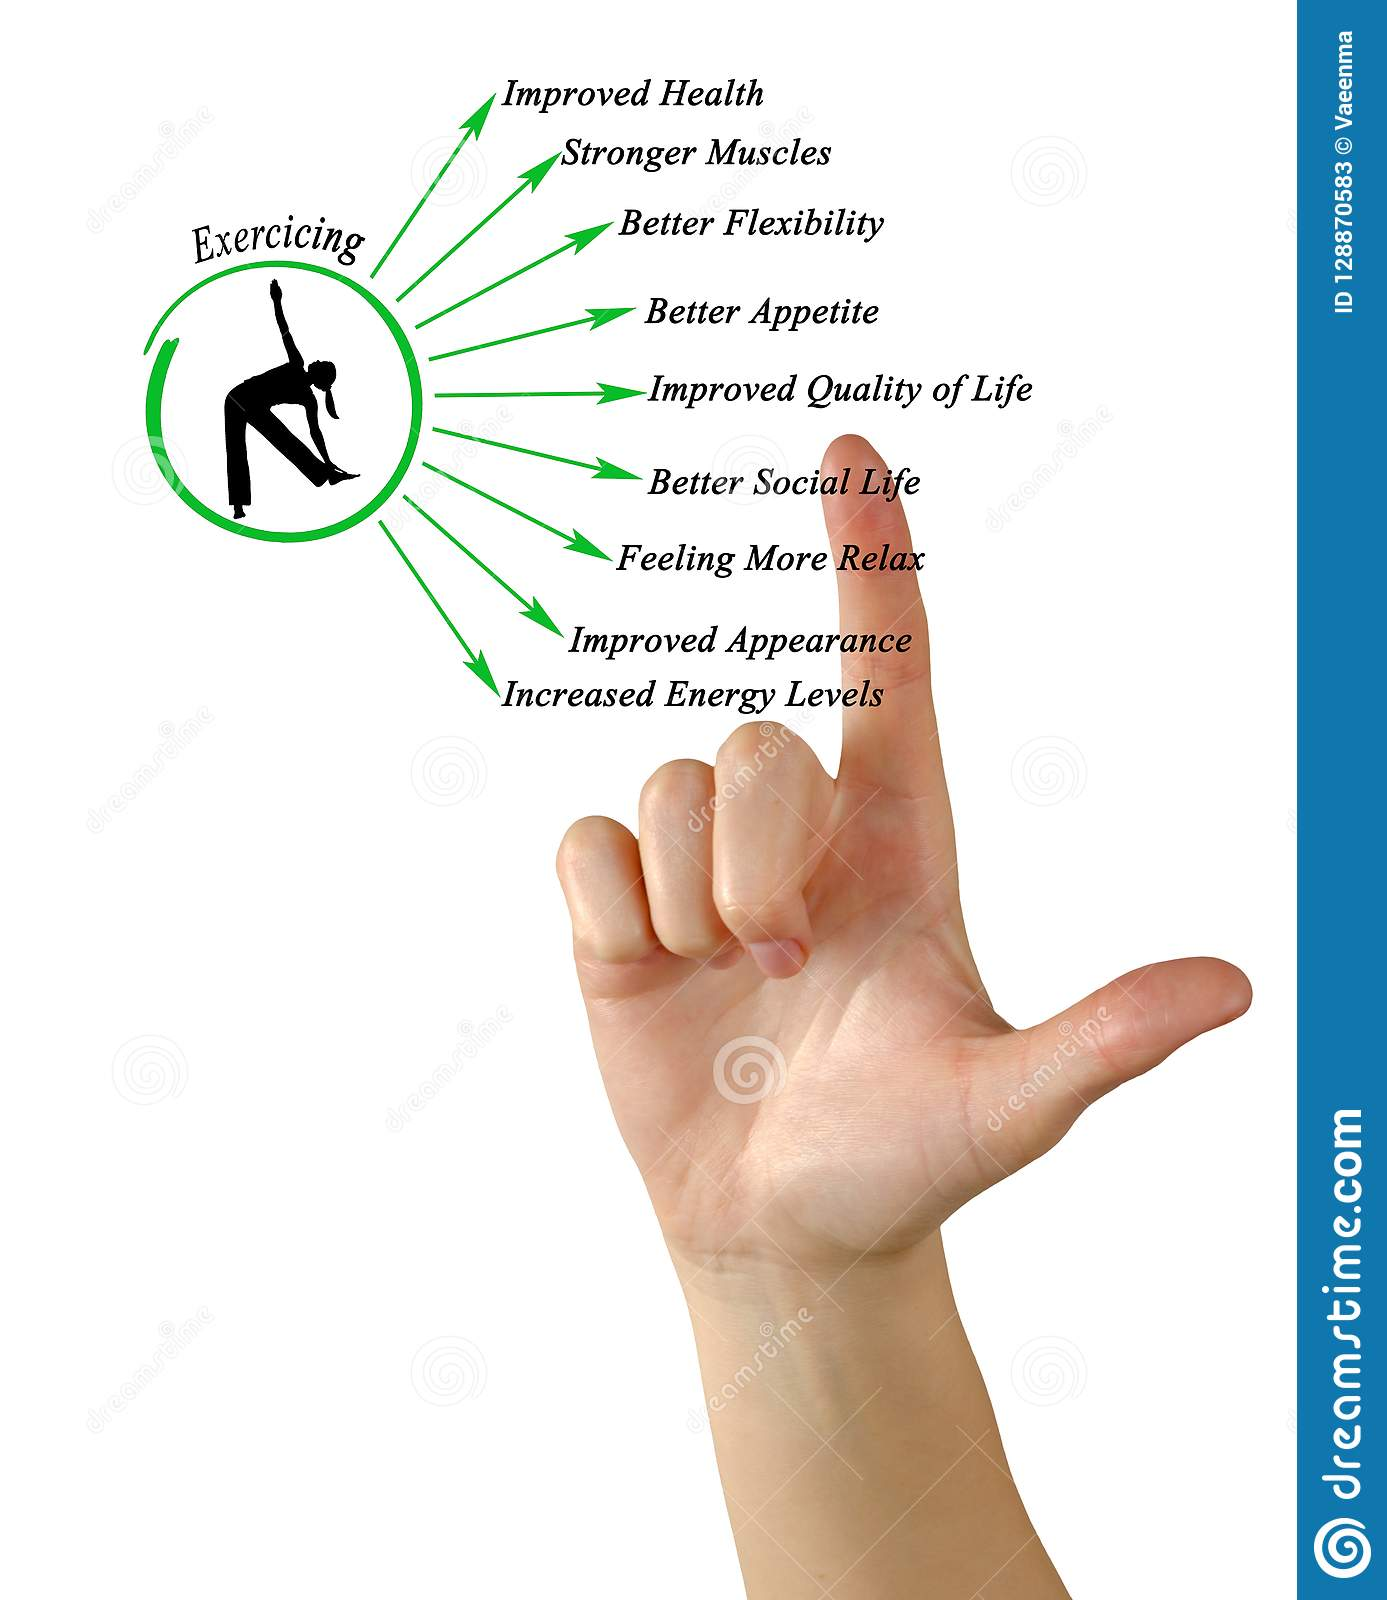 Benefits Of Exercise Stock Image Image Of Hand Social 128870583